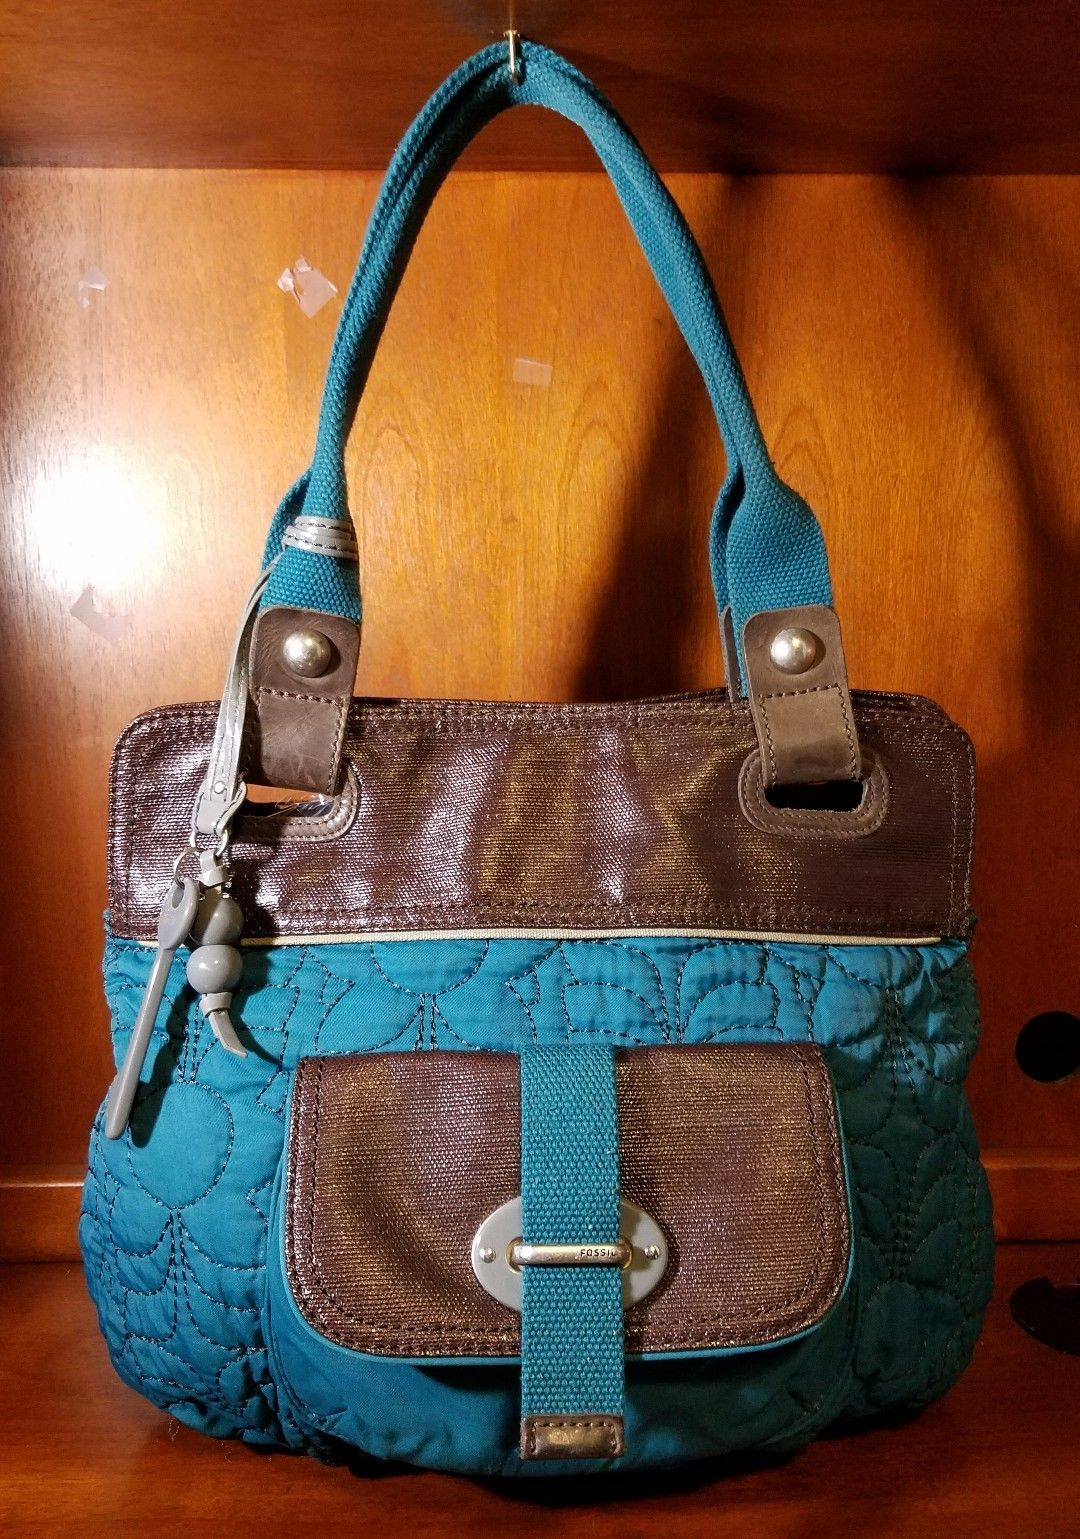 595efc9084d7 Fossil Key Per Quilted Dark Turquoise Front Pouch Leather Canvas Brown Trim  Bag